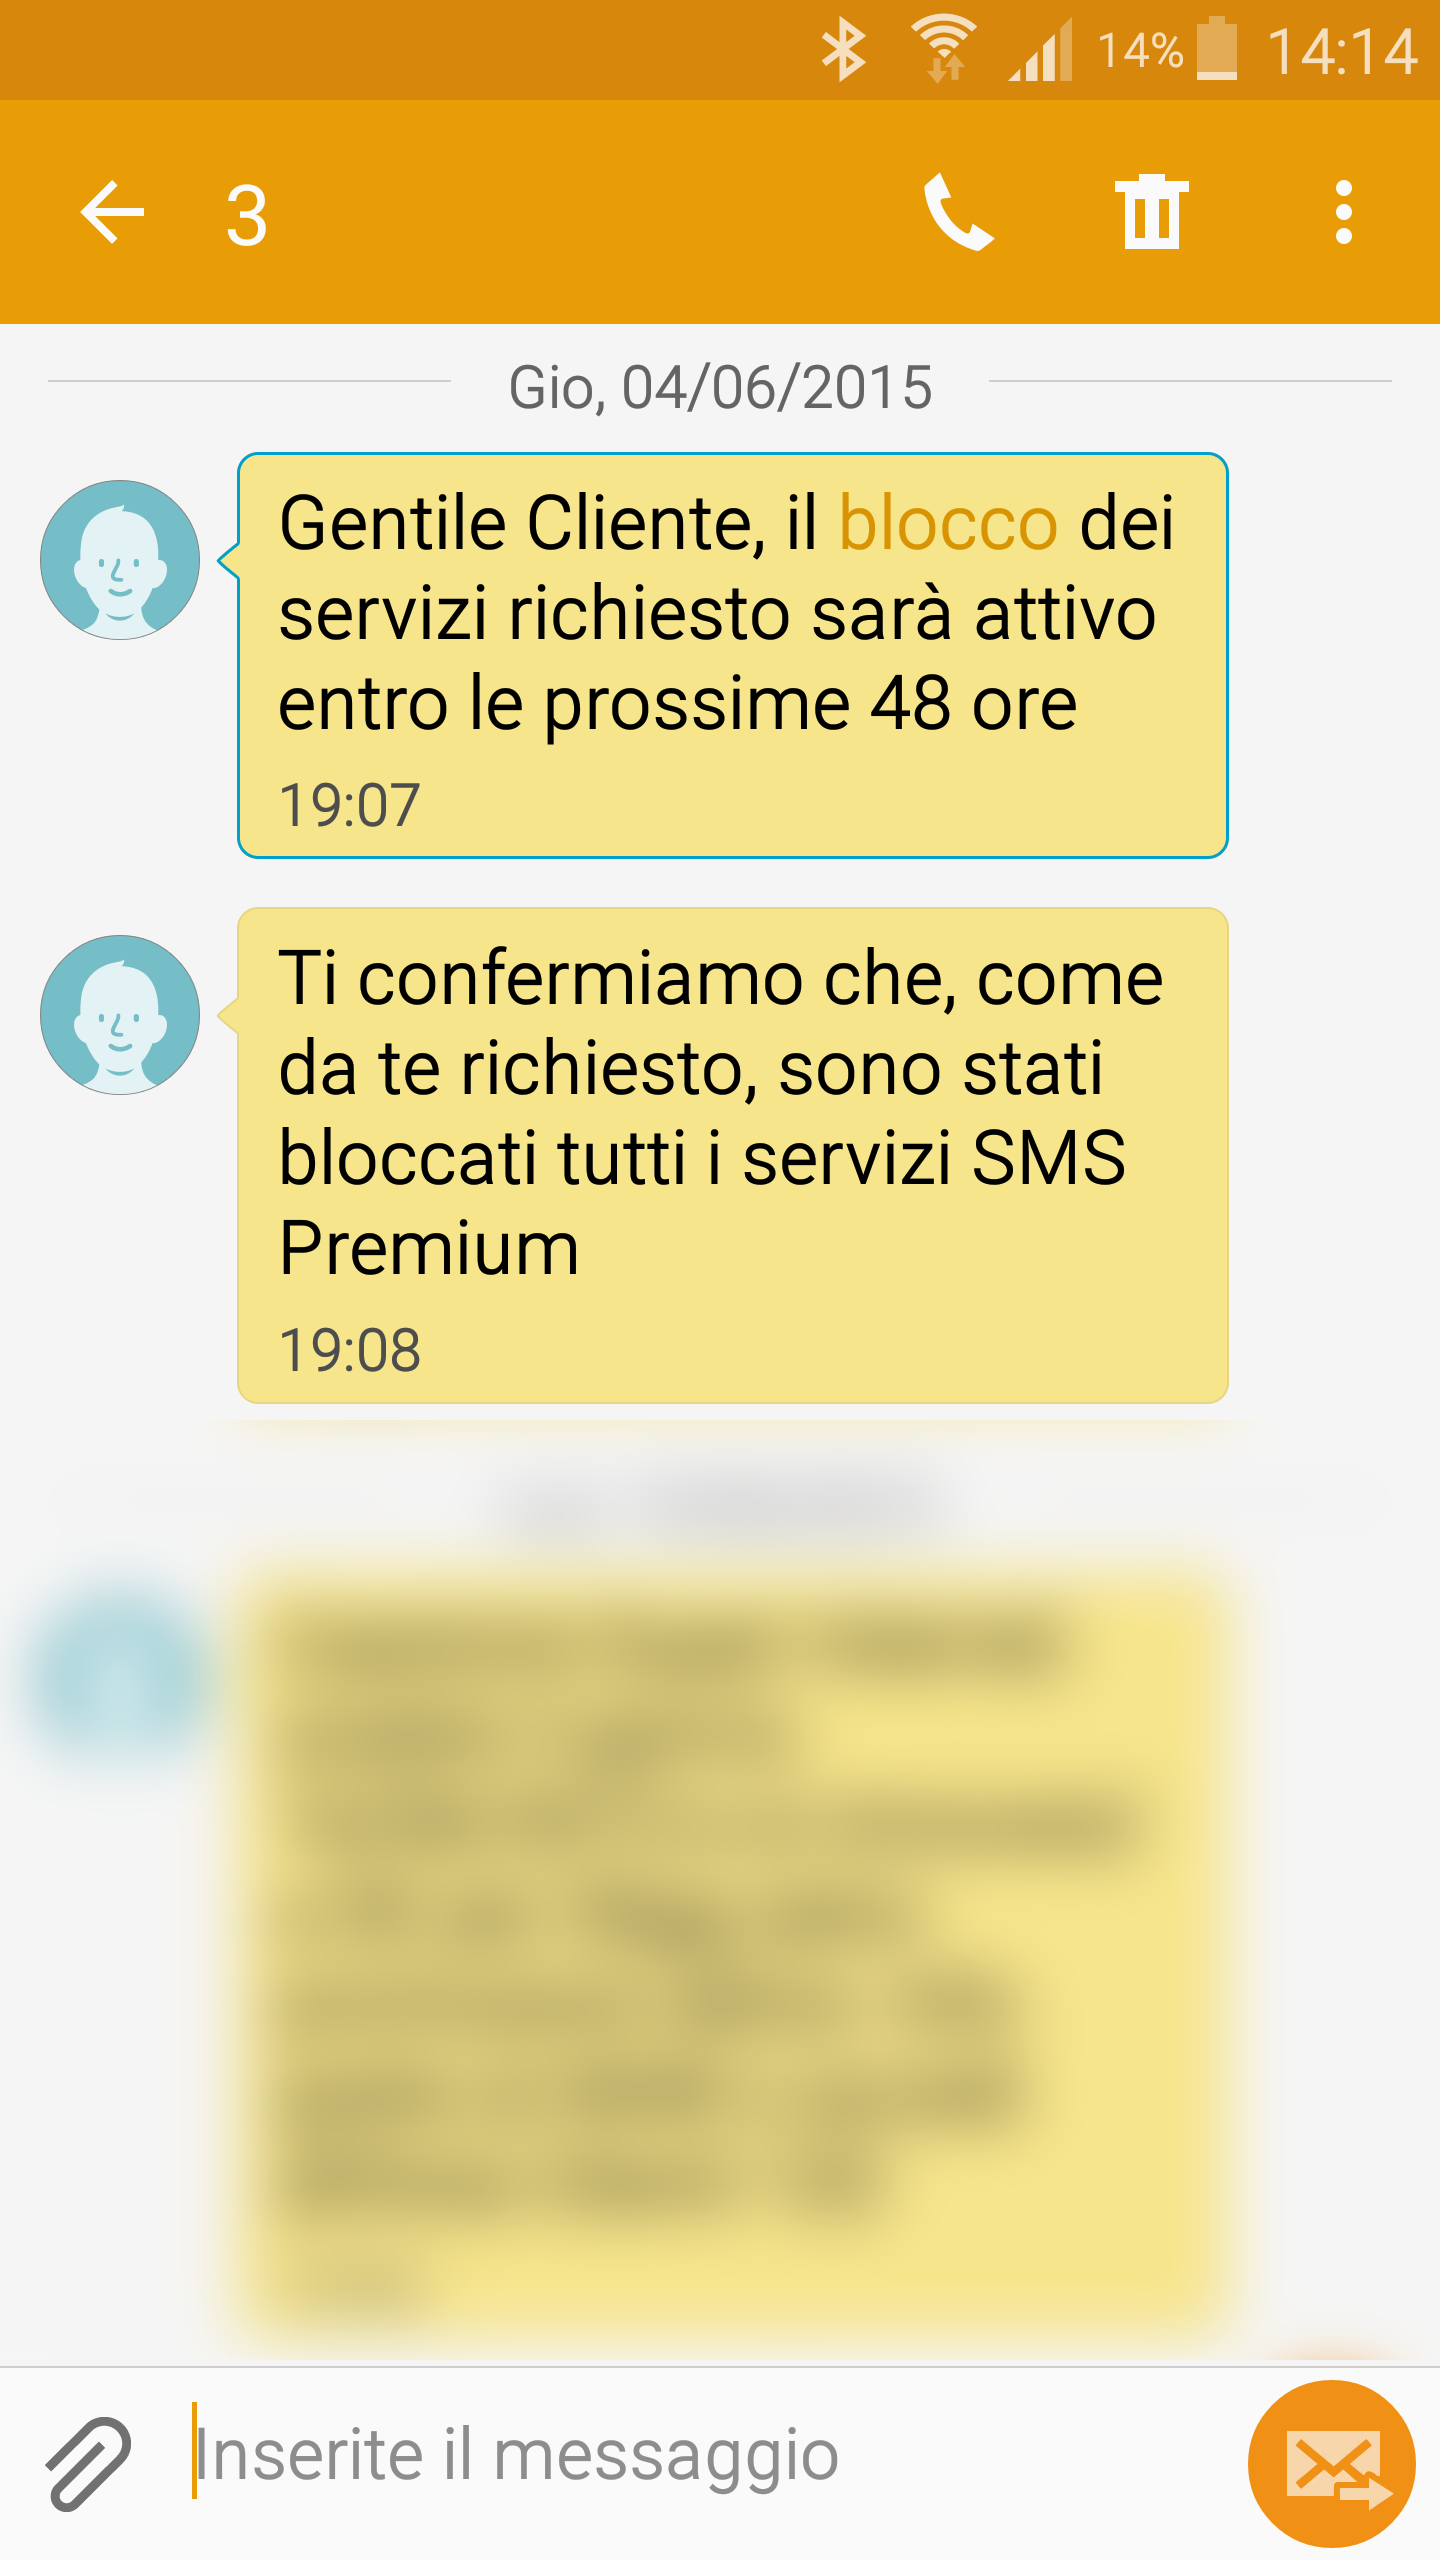 Barring SMS H3G Three Italy, block of premium services and paid text